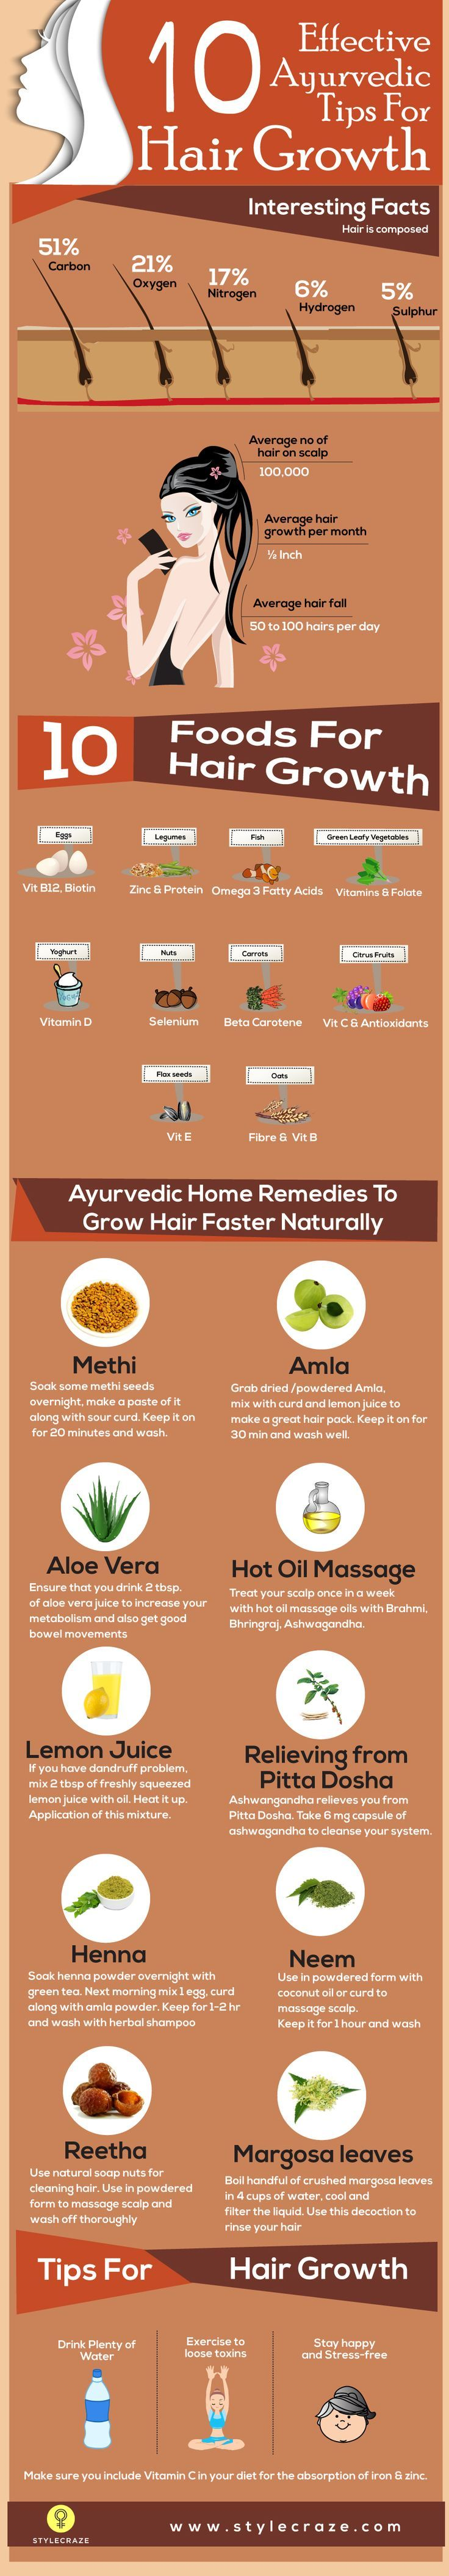 Nothing works better than natural ingredients for hair growth and care! Our expert Zinnia gives you 10 effective ayurvedic home